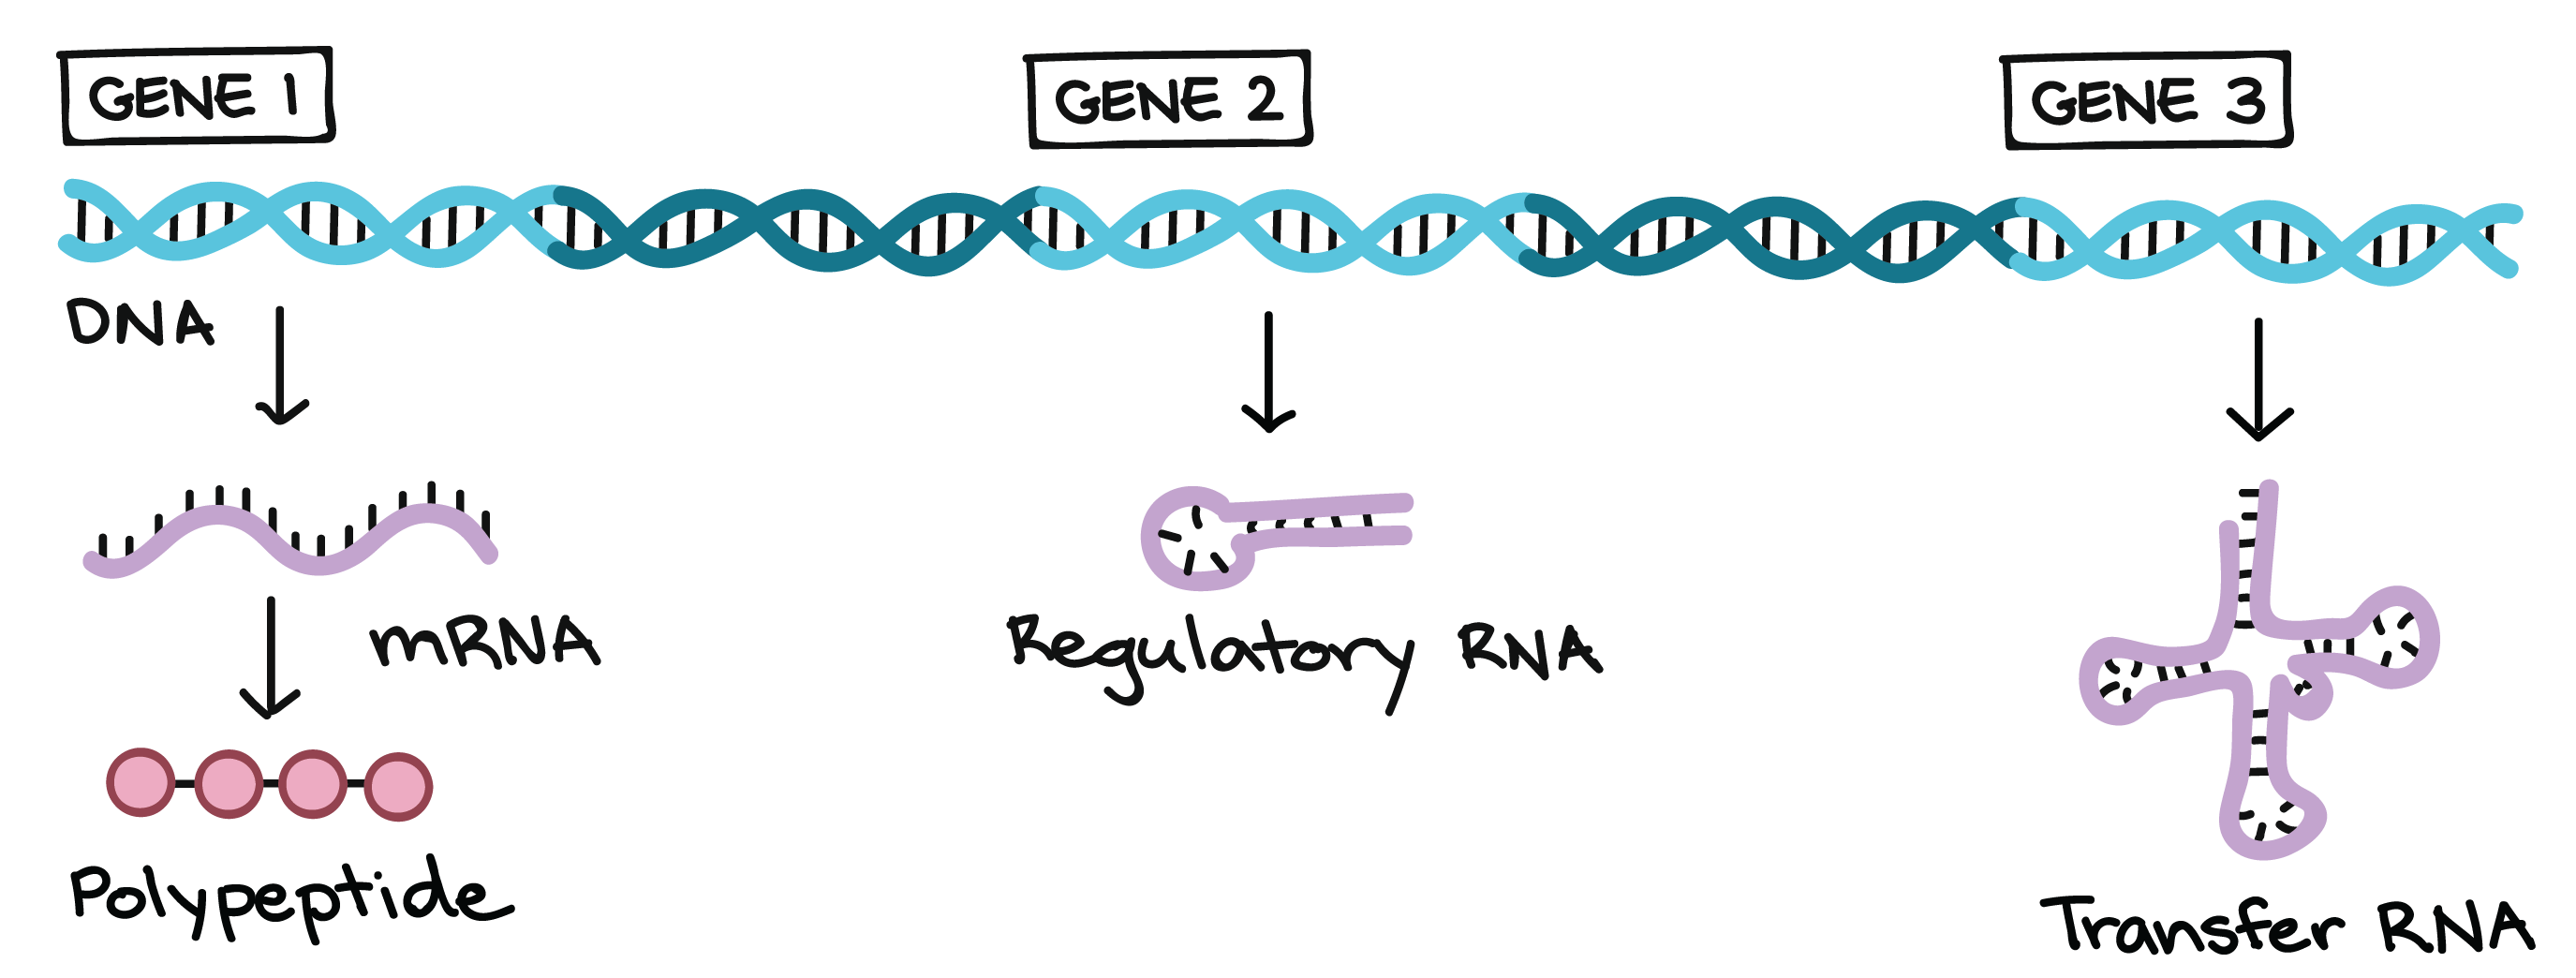 Fundamentals Of Genetics Worksheet Answers